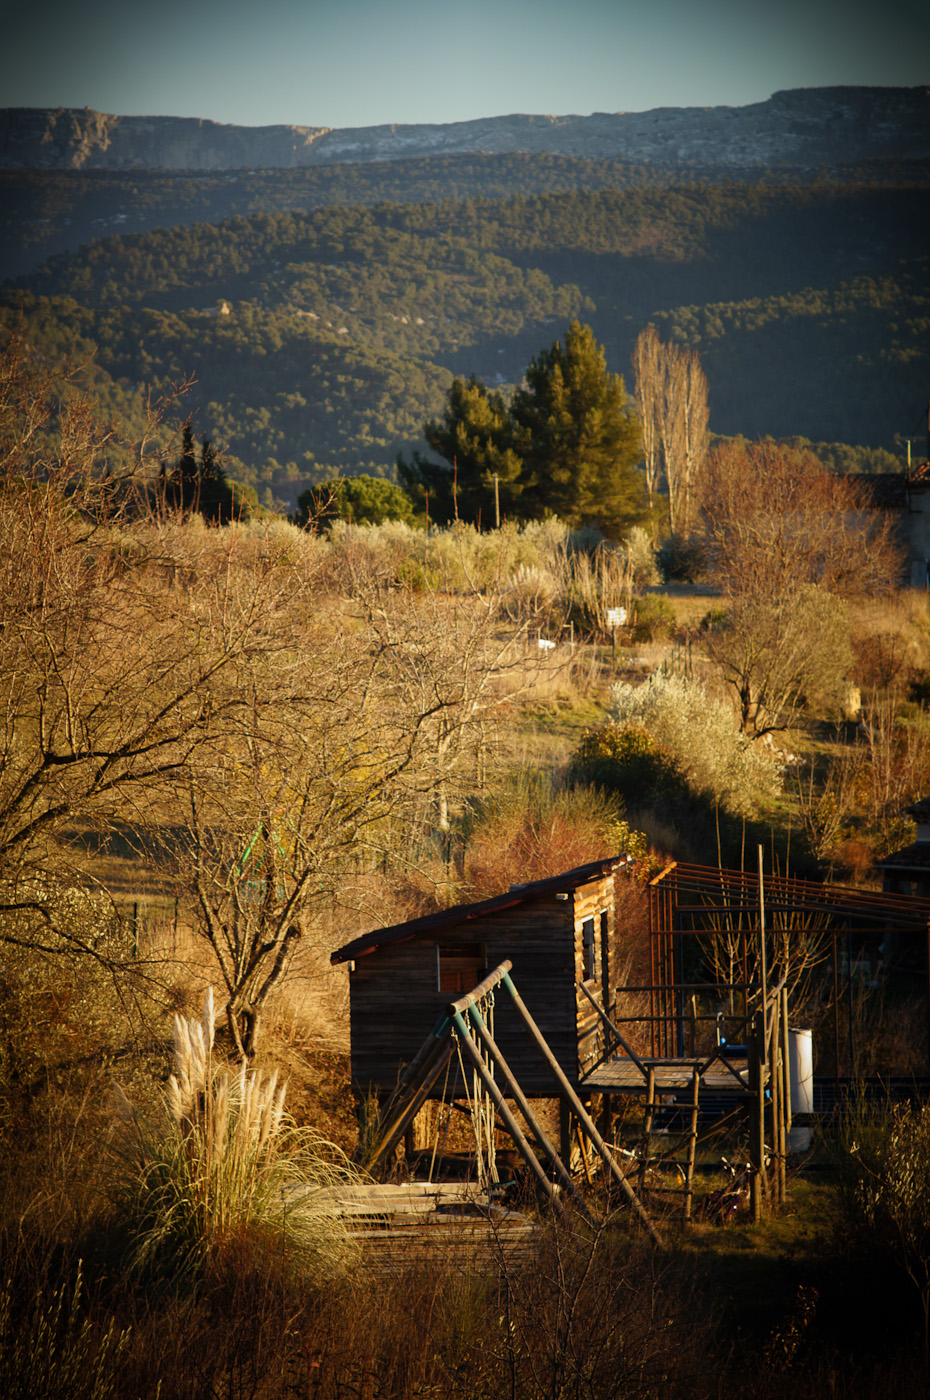 A children's cabin photographed in Toy Camera mode with the Sony NEX-5N and Leicam Elmarit-M 90/2.8